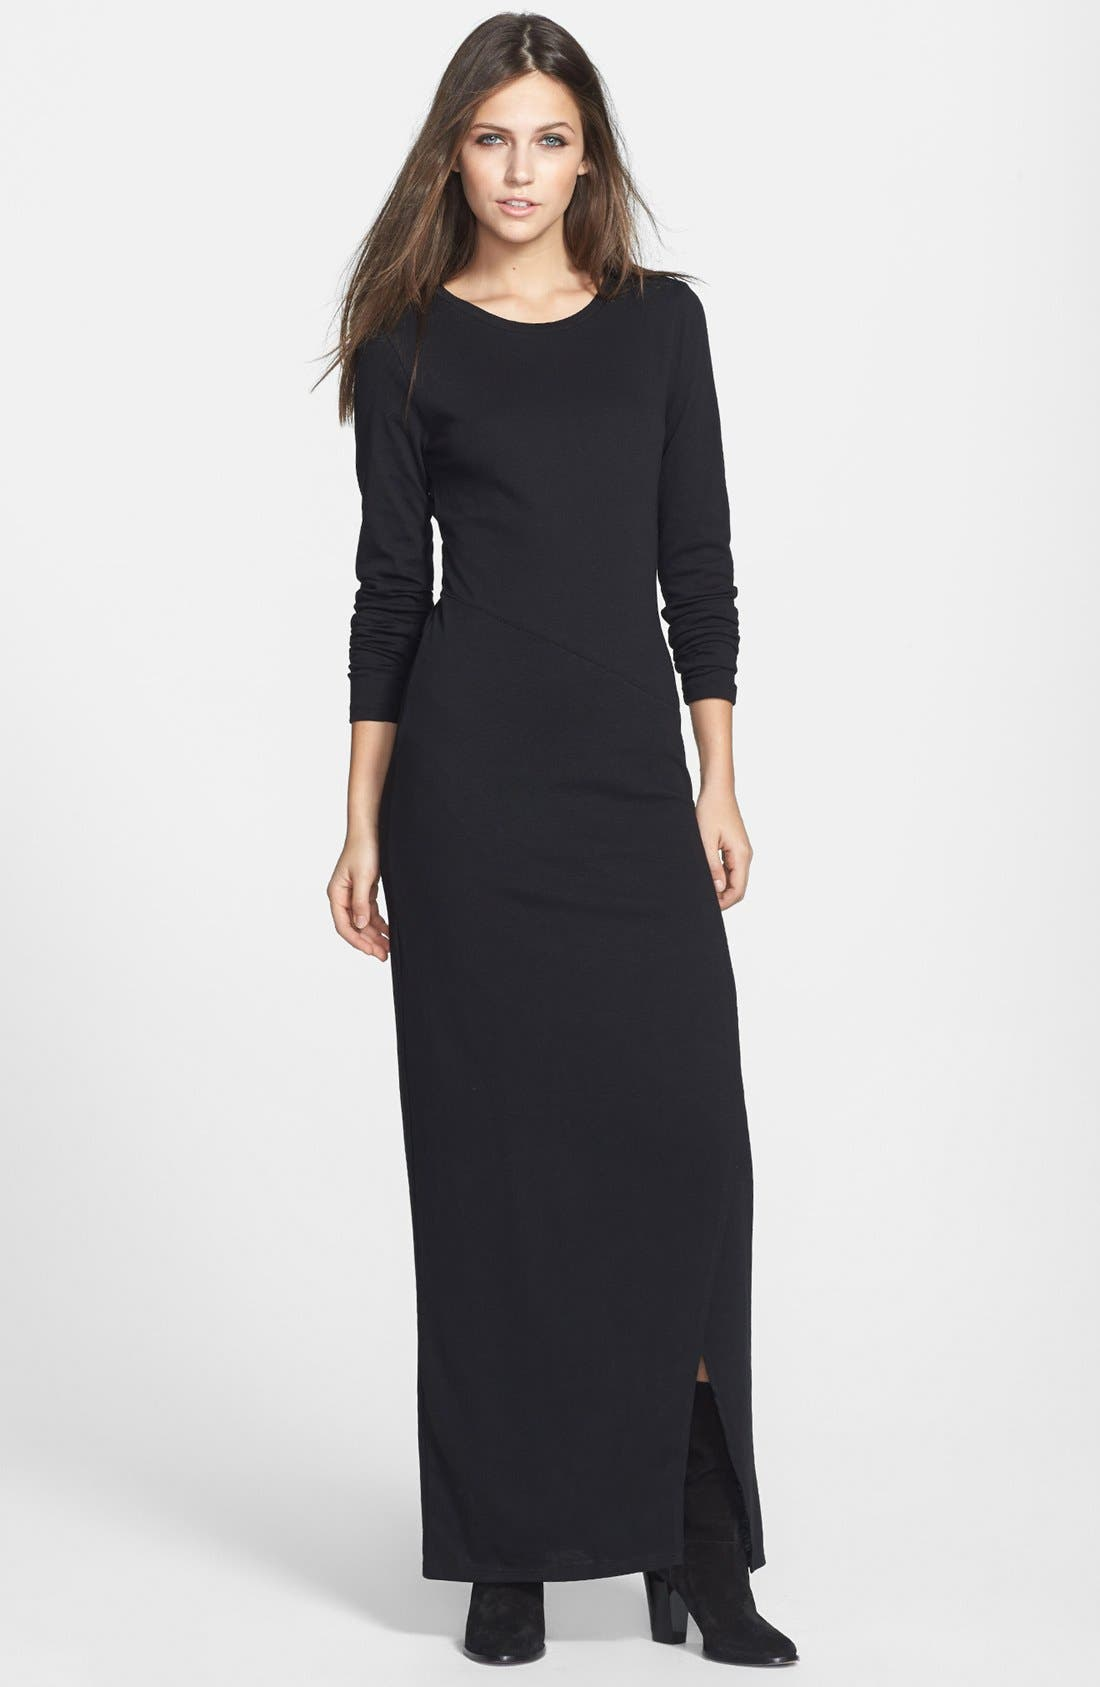 Alternate Image 1 Selected - Leith Long Sleeve Knit Maxi Dress